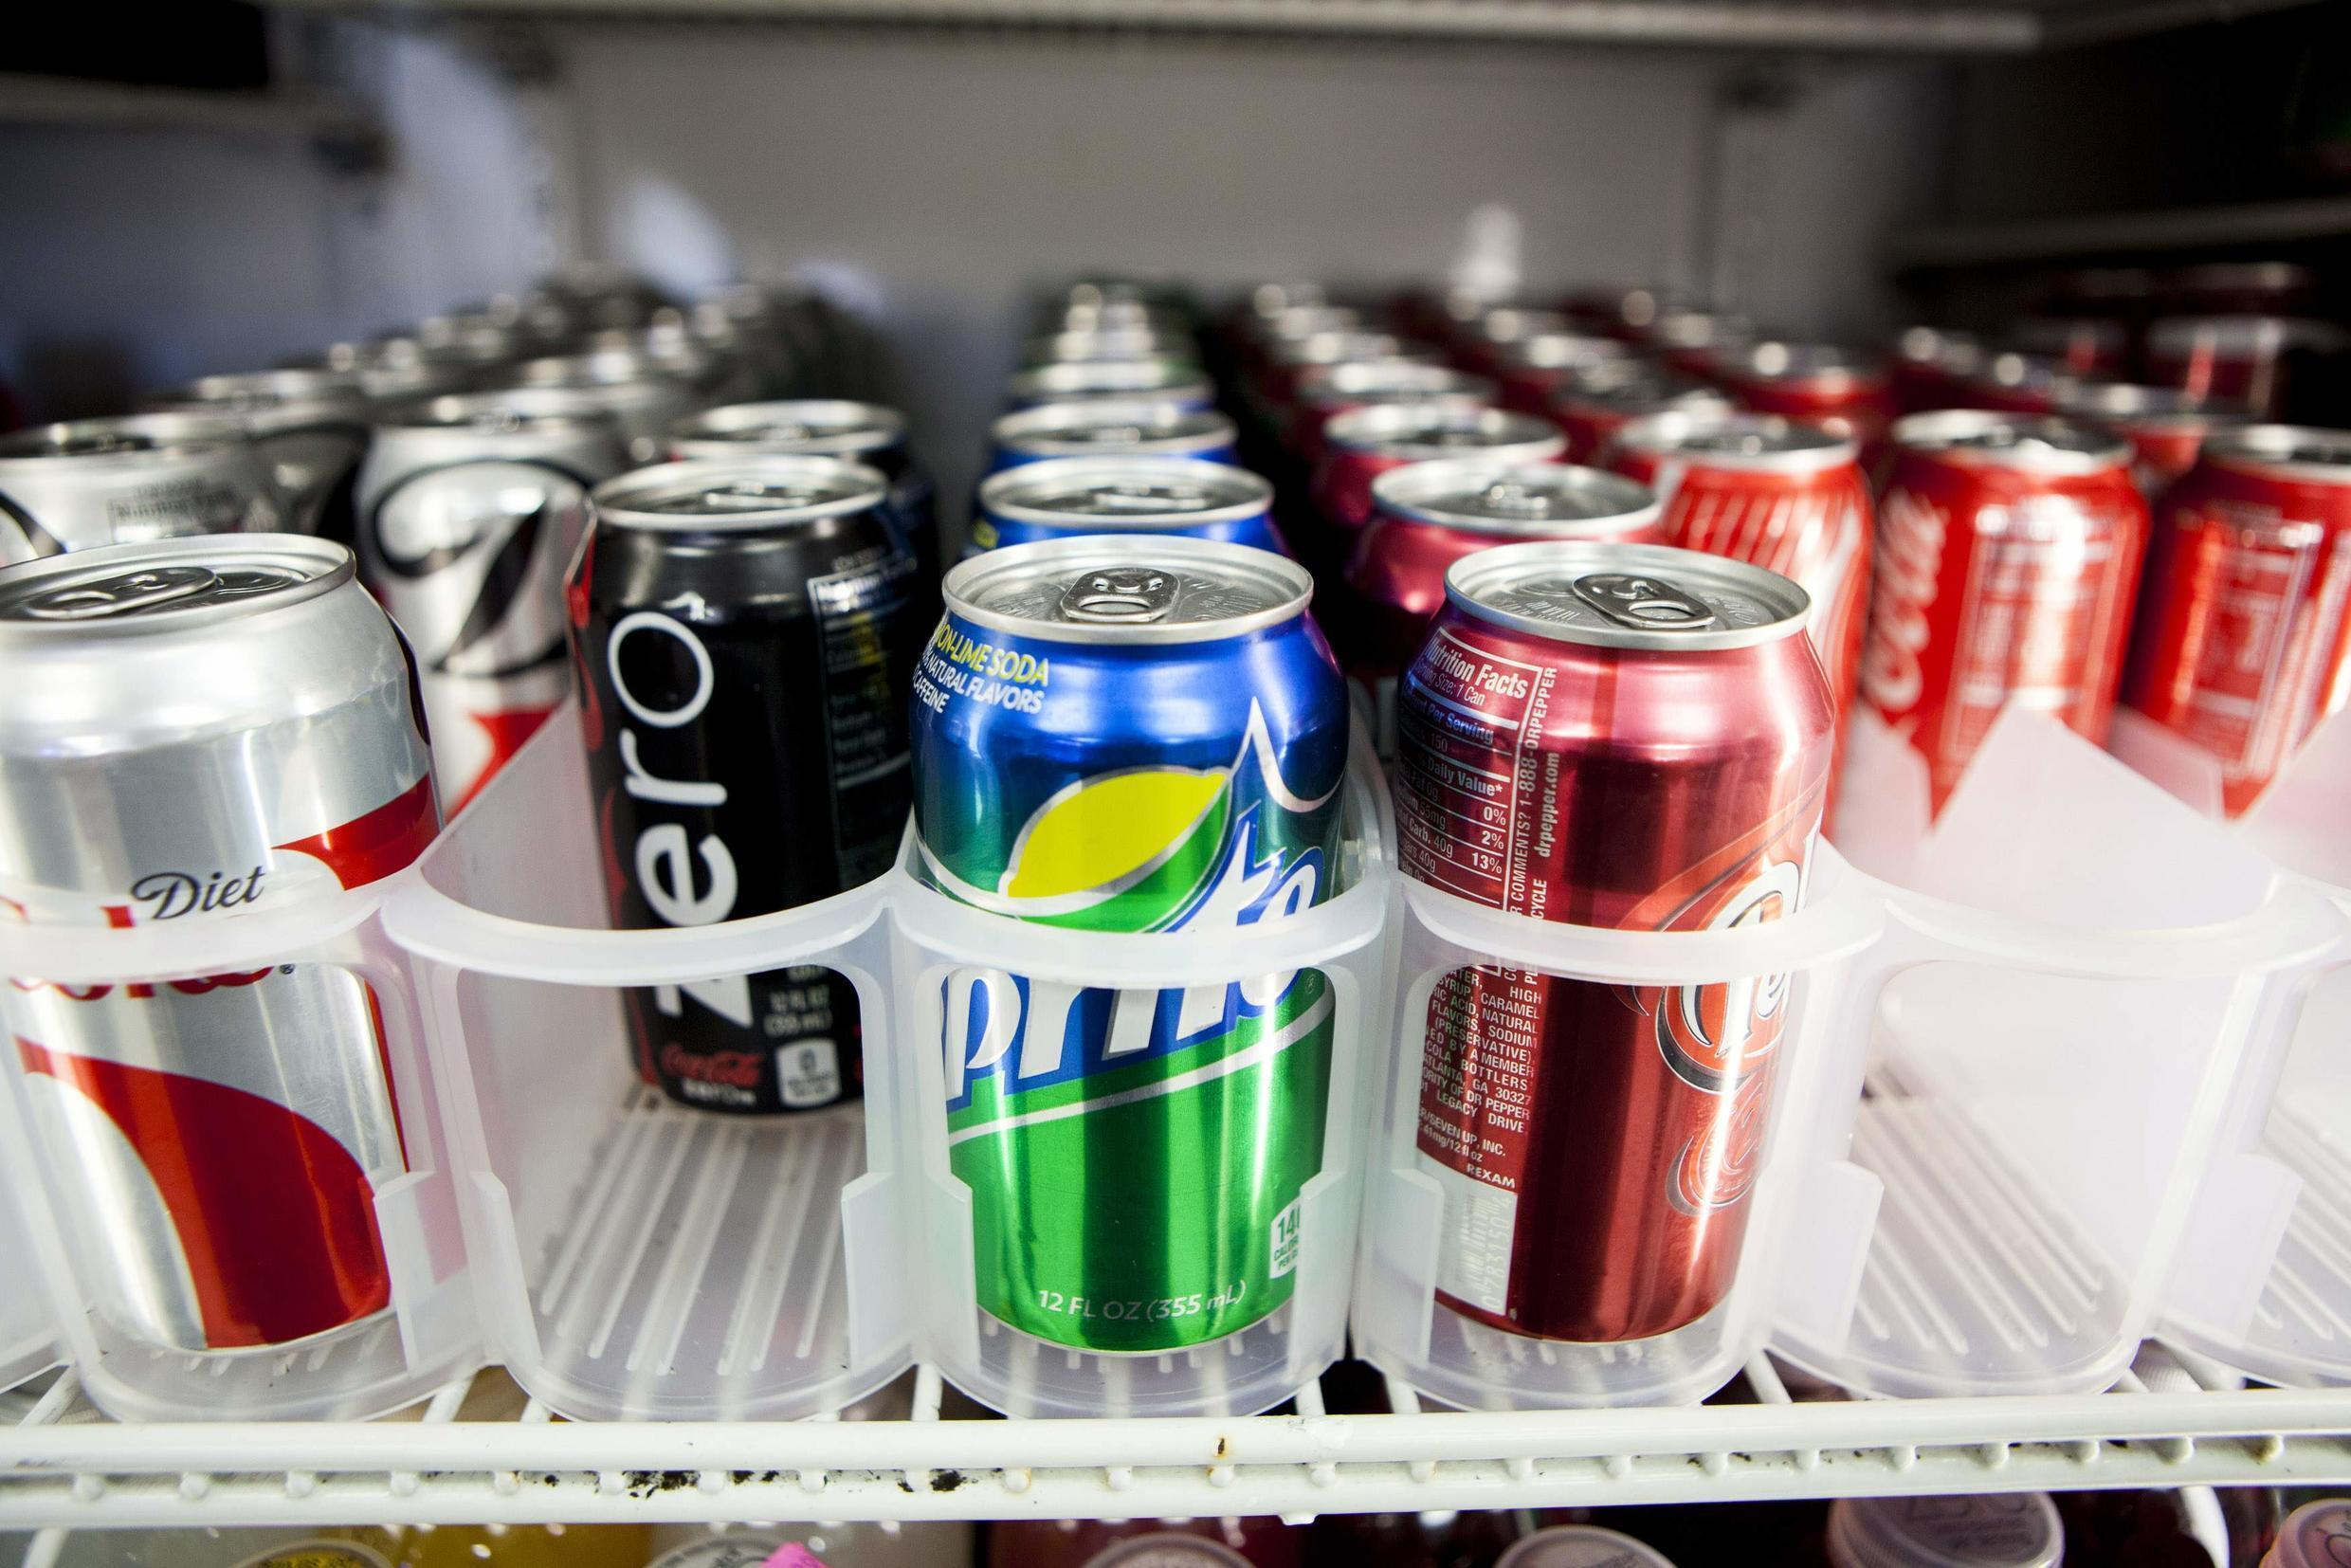 Sugary beverages sold in California would be required to carry warning labels for obesity